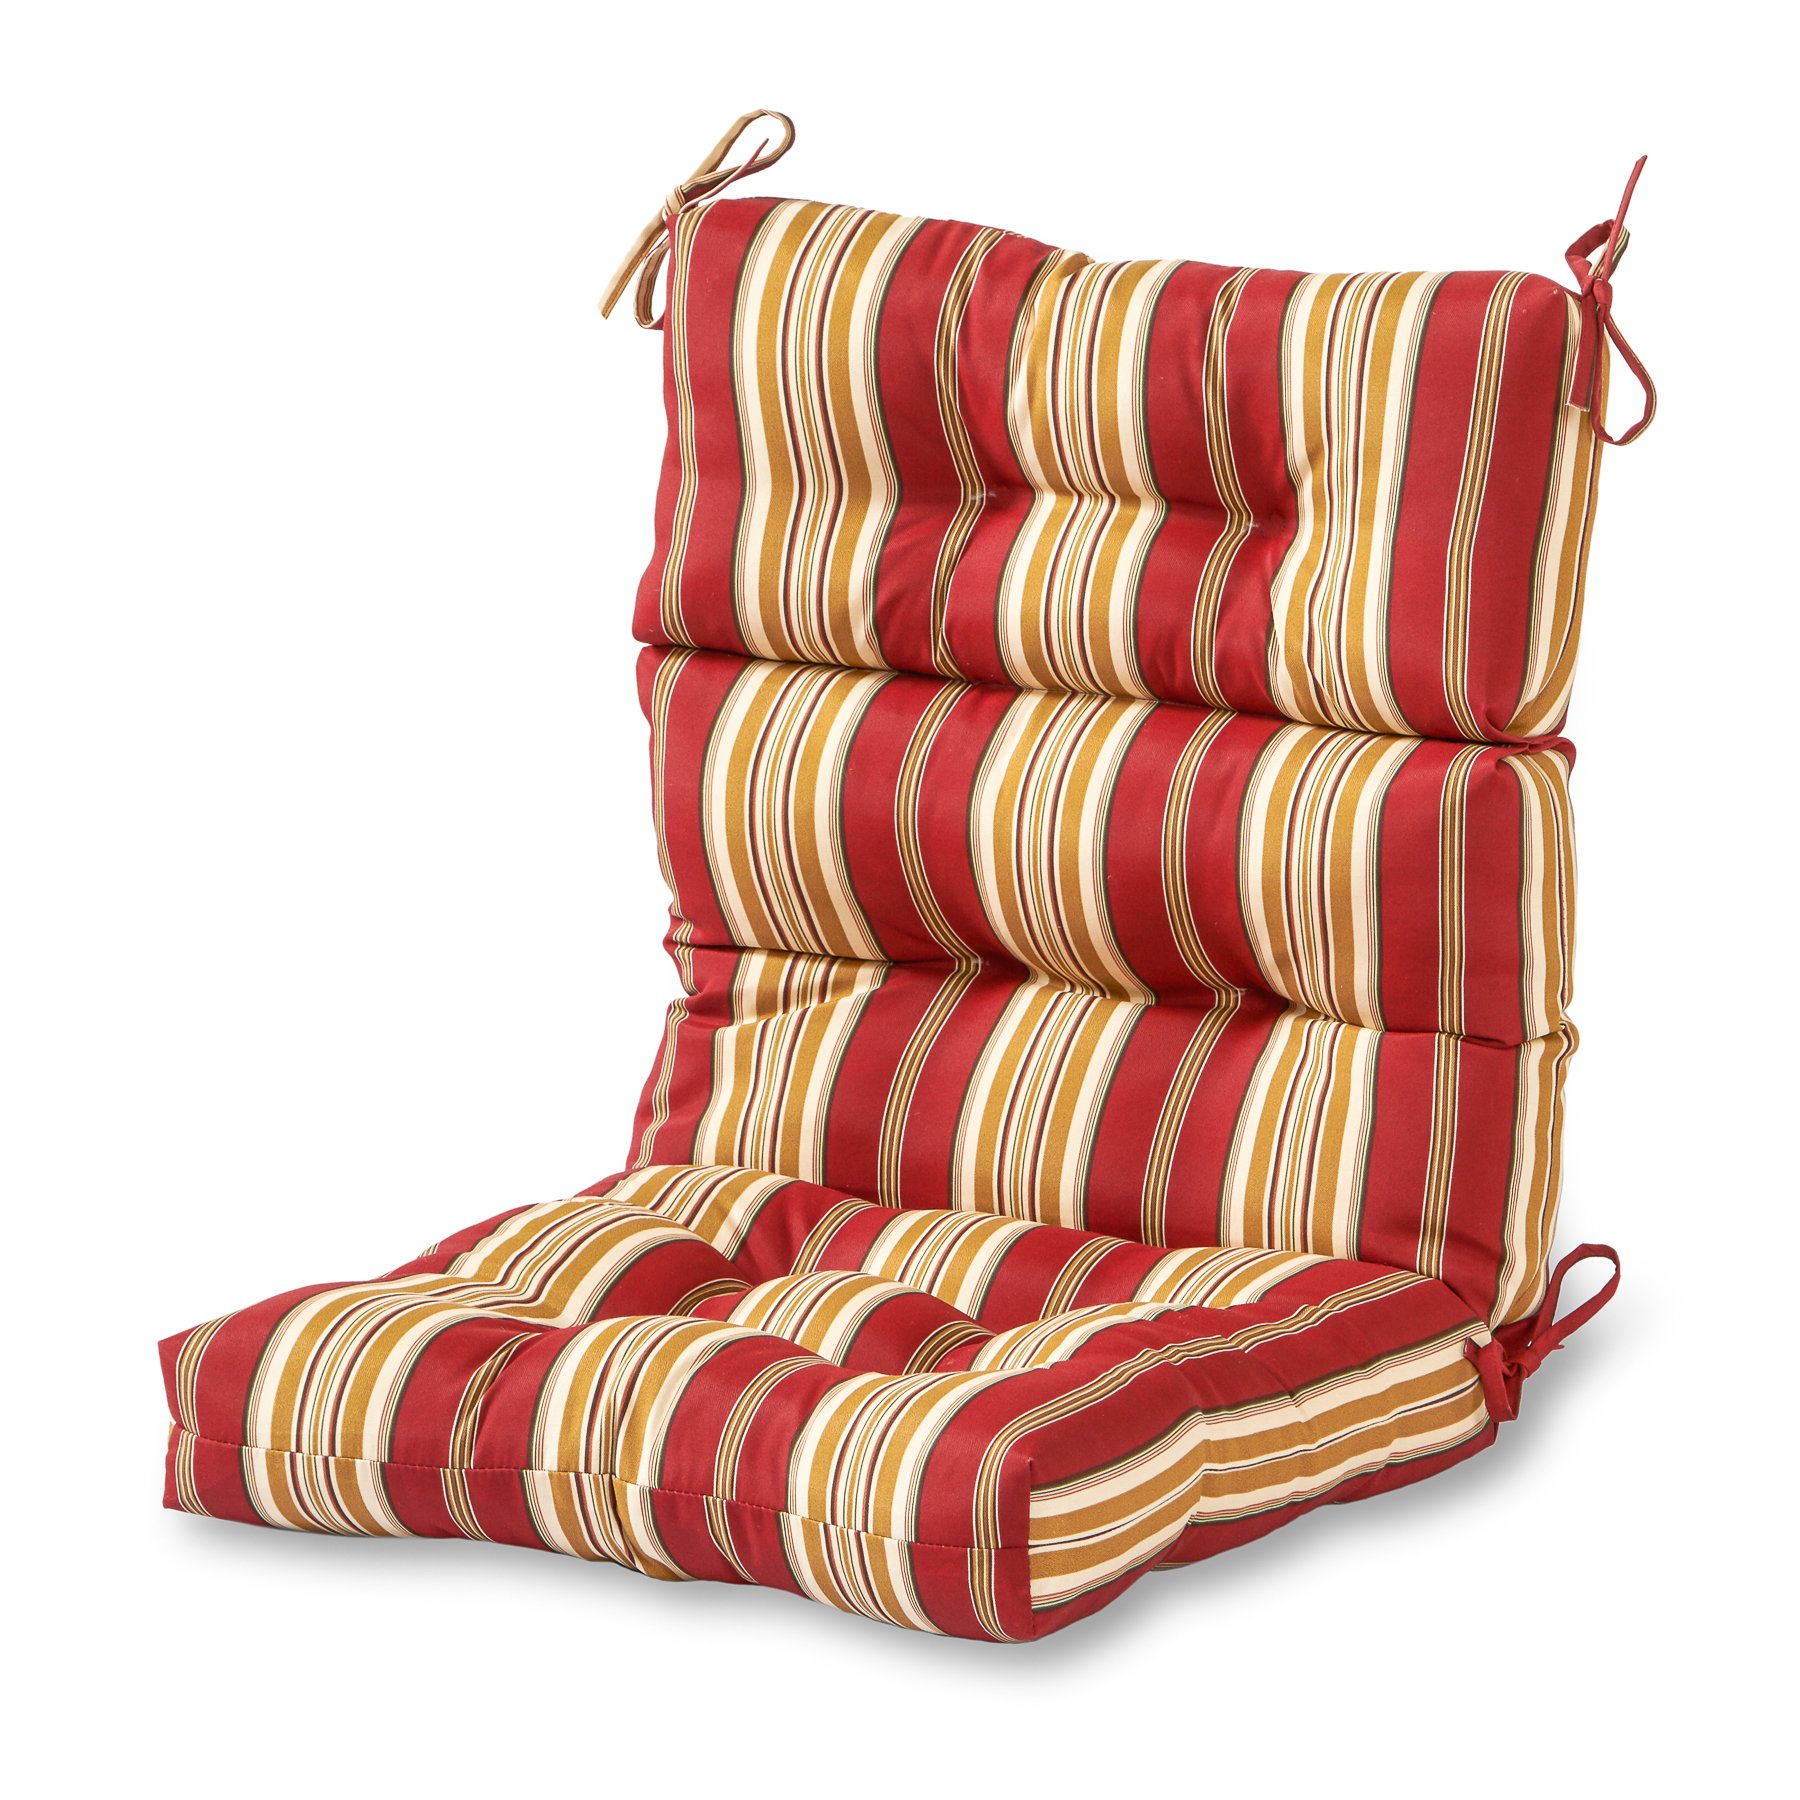 225 & Replacement Cushions for Patio Furniture: Amazon.com